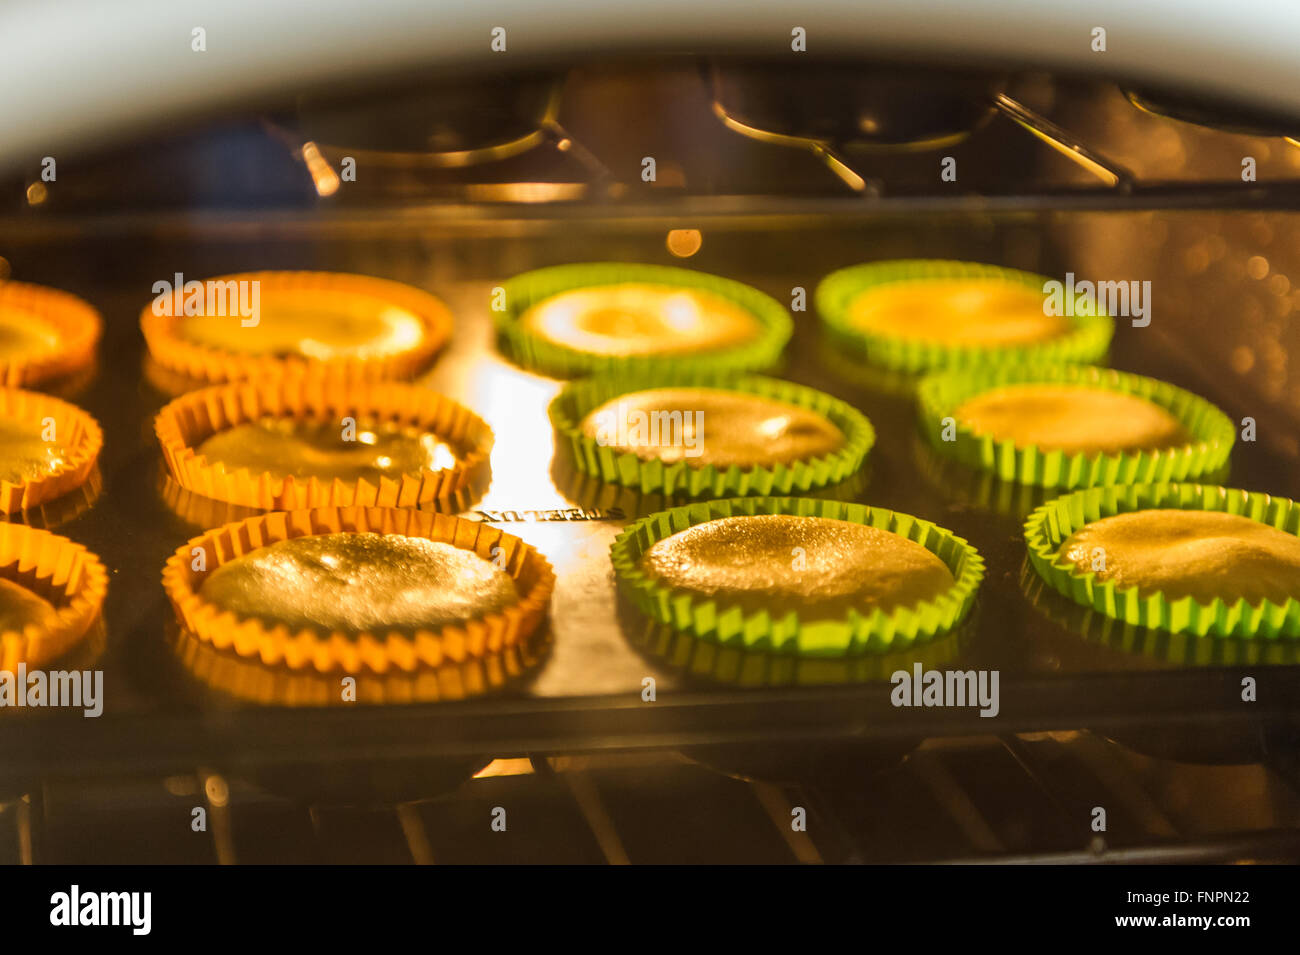 a-tray-of-cup-cakes-rise-in-the-oven-in-